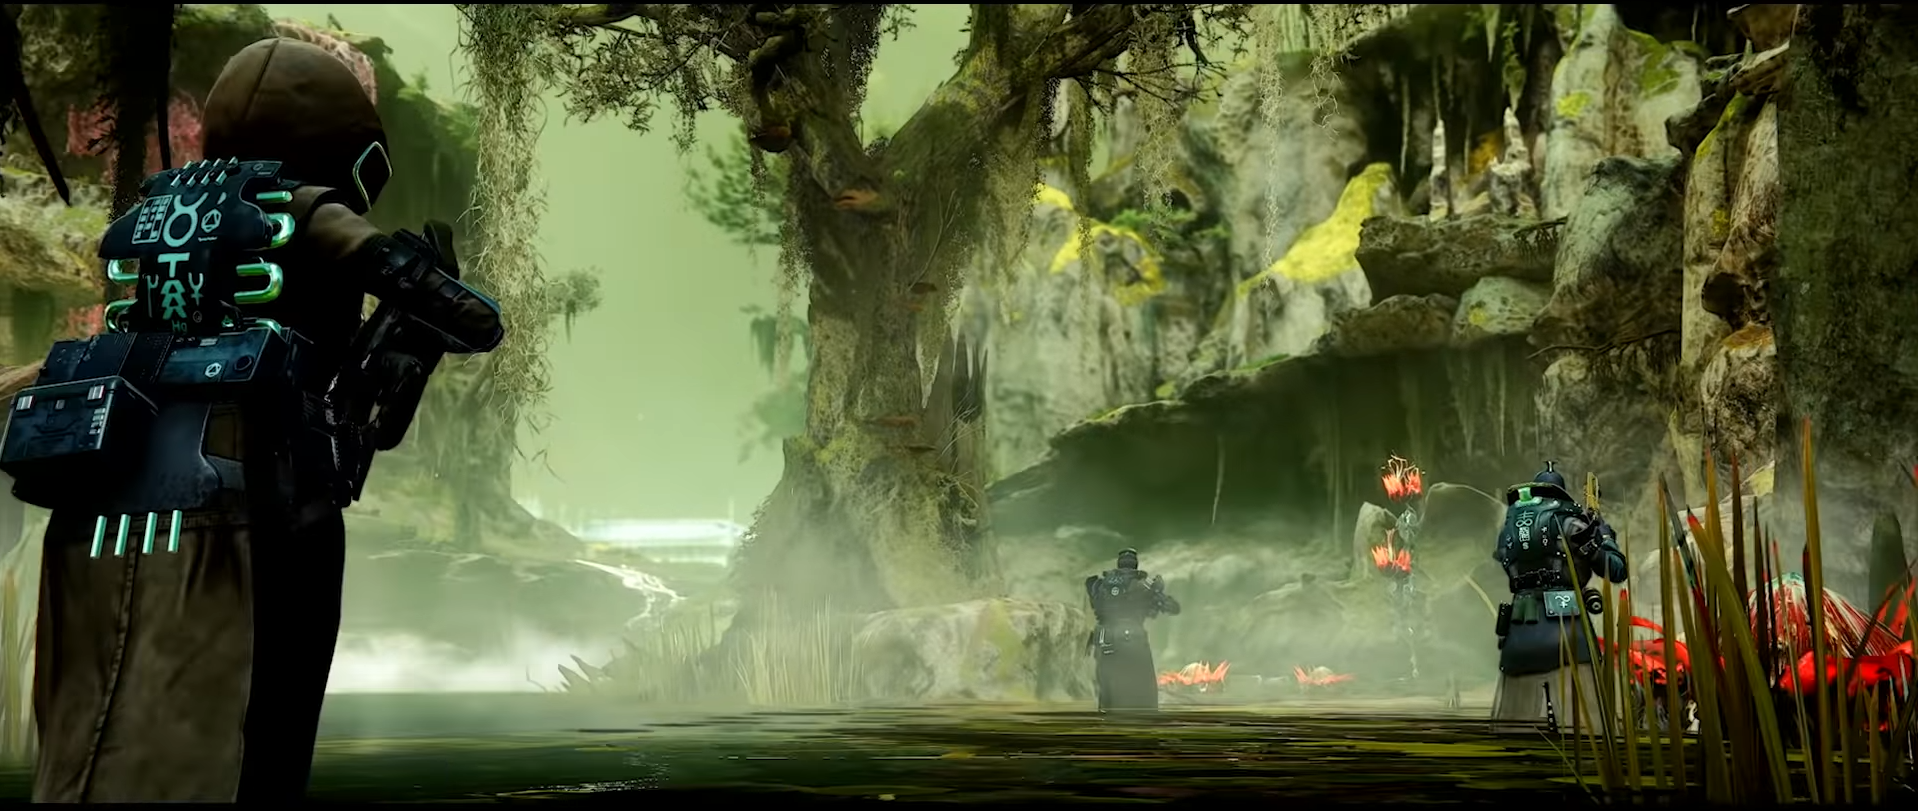 The Witch Queen's Swamp